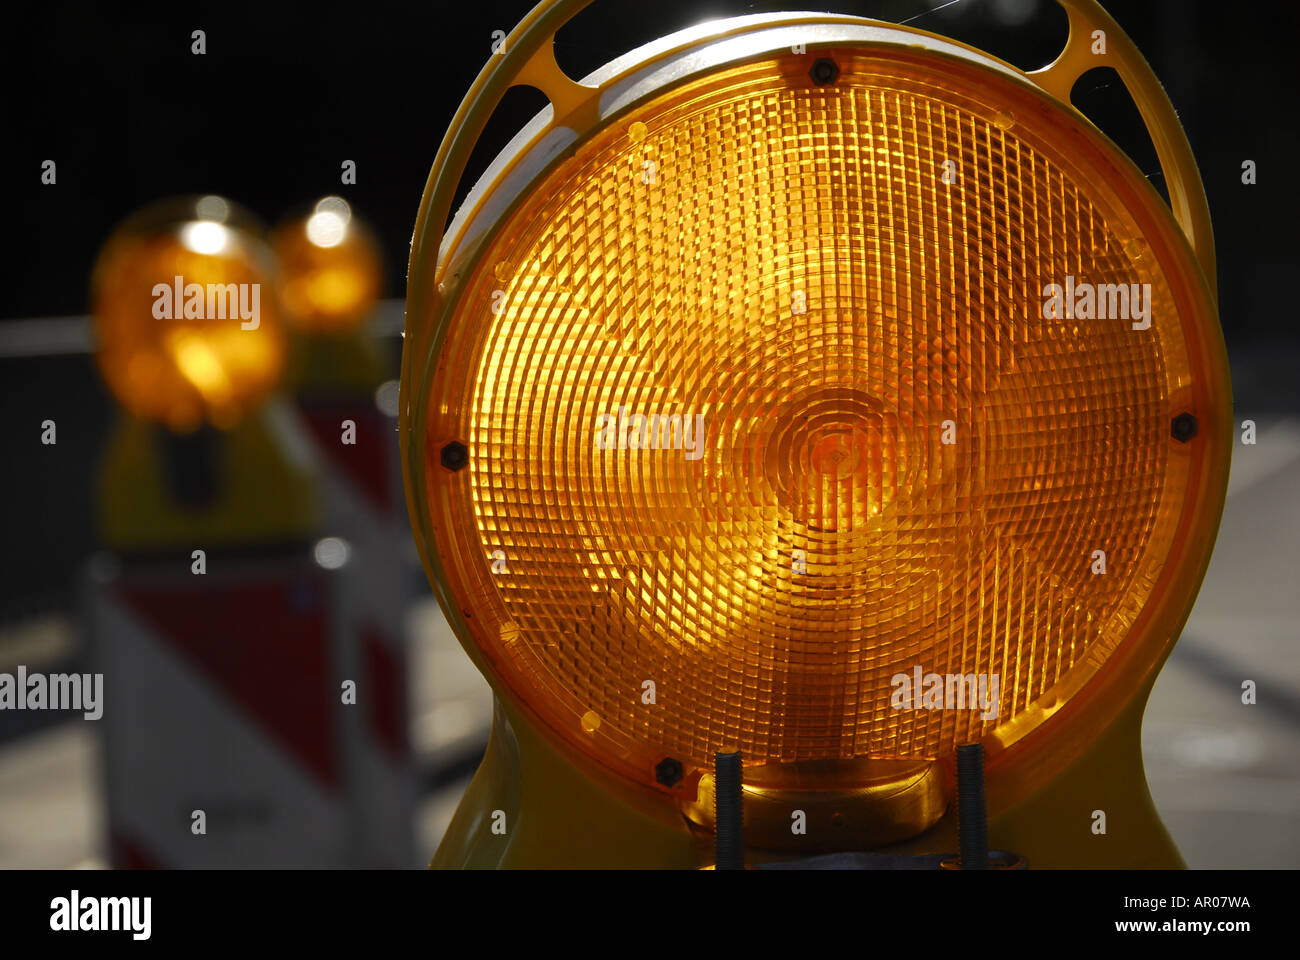 Warning-light, safeguarding of a construction site - Stock Image